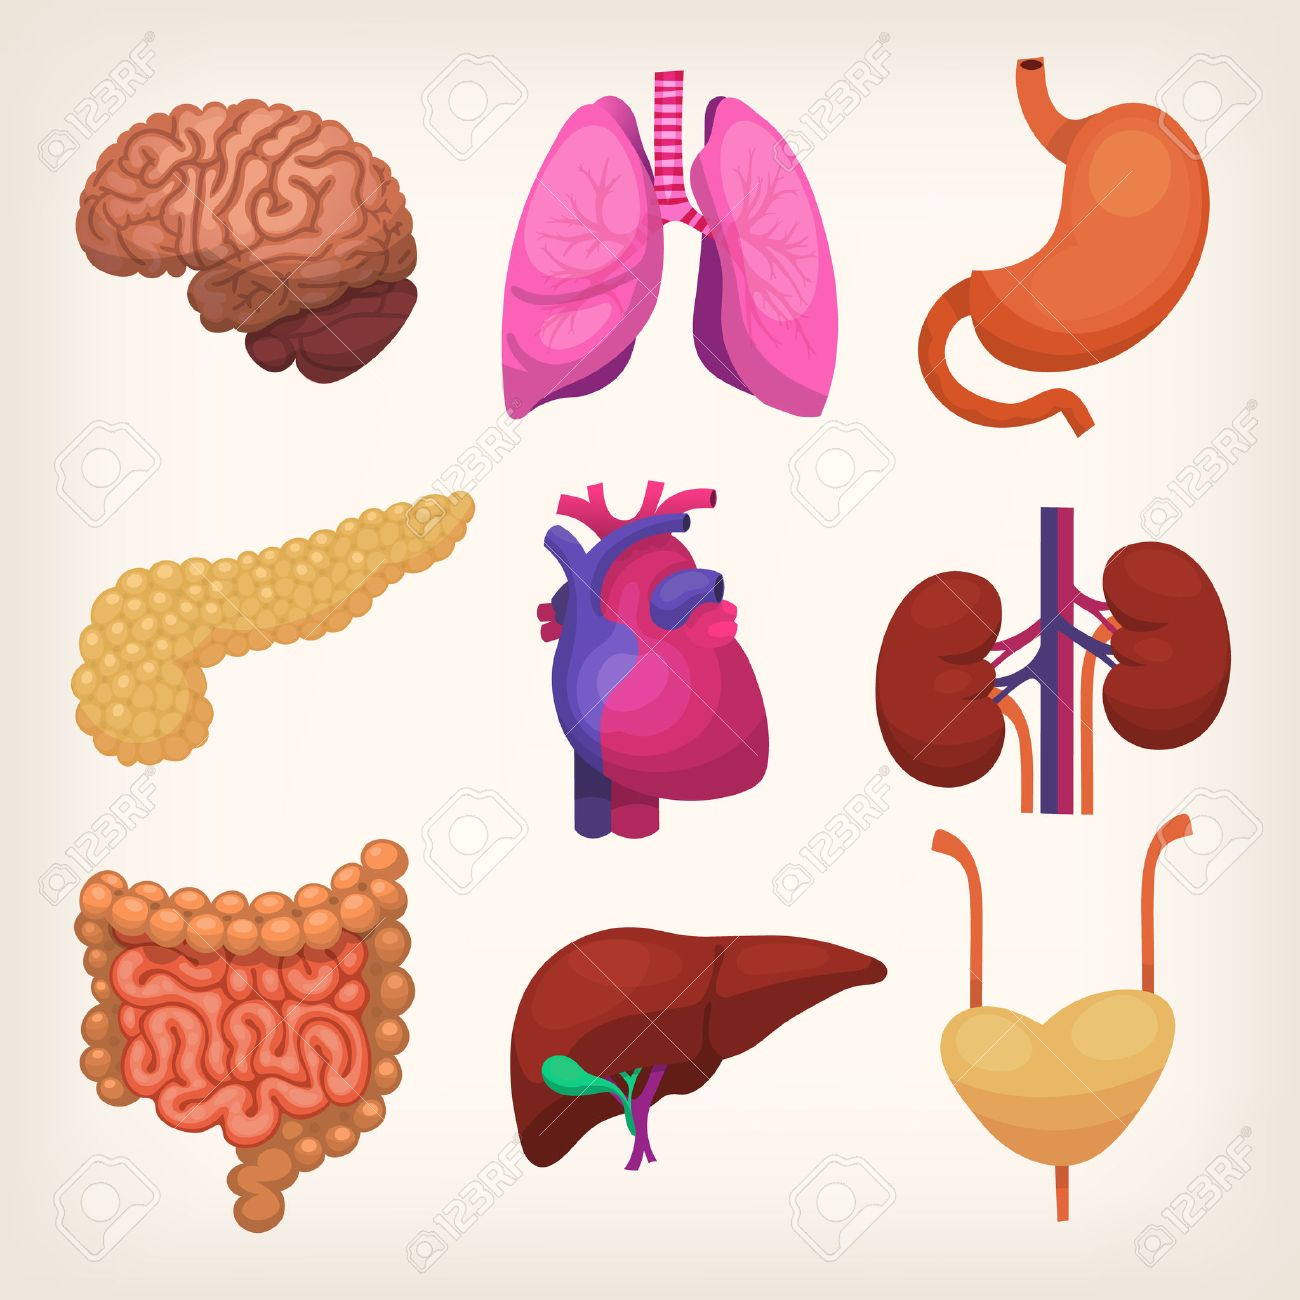 Set Of Colorful Realistic Human Body Organs Royalty Free Cliparts